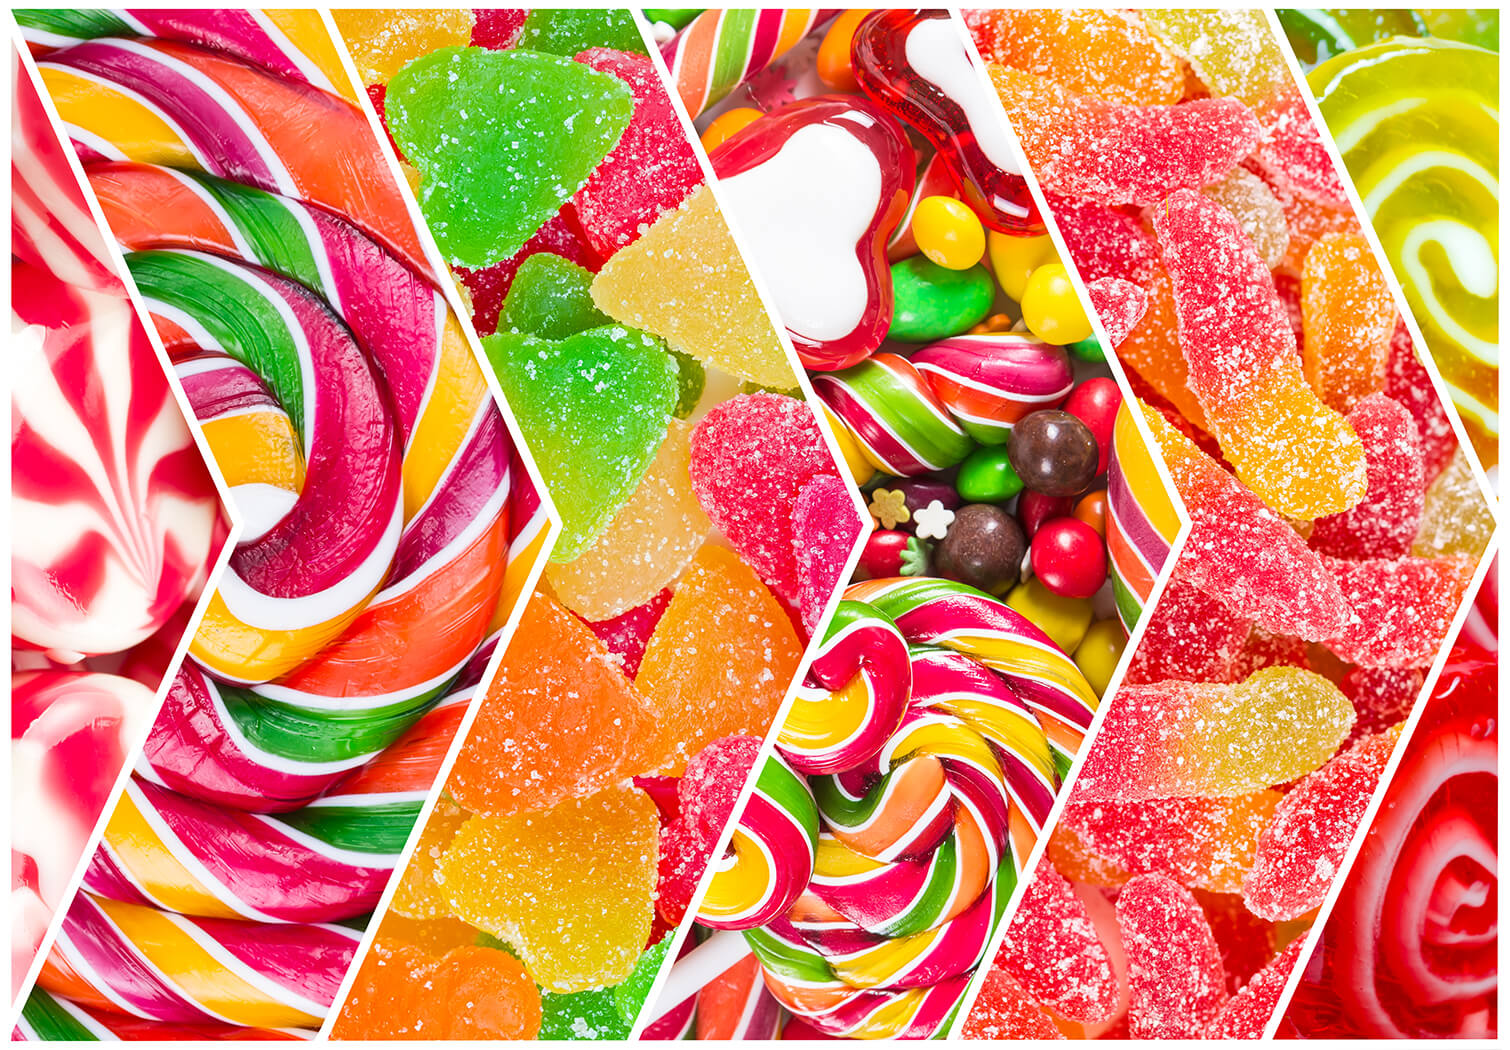 collage-of-different-colorful-candy-PKETXKG